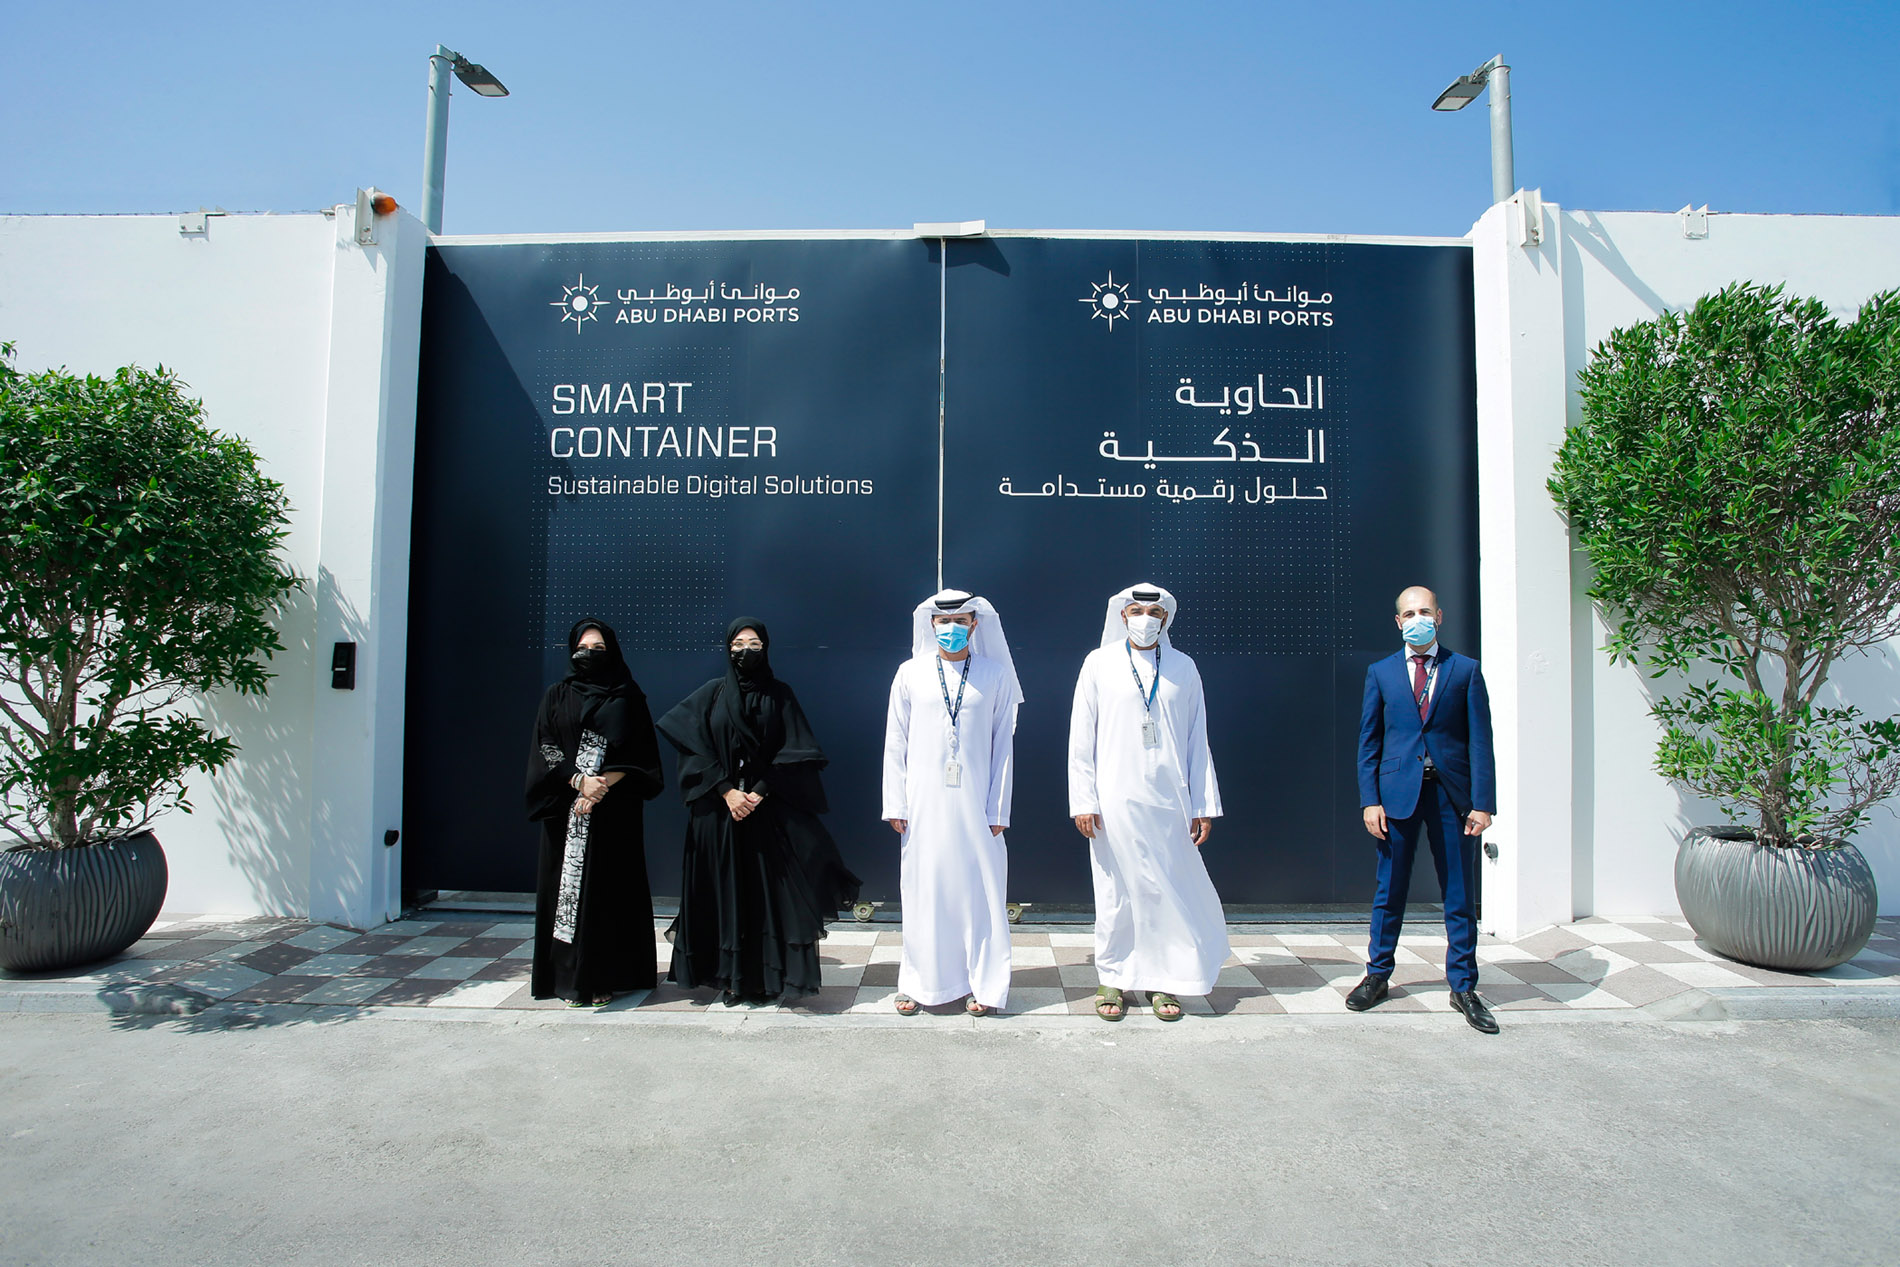 Abu Dhabi Ports aims to cut emissions by half with Smart Container Initiative